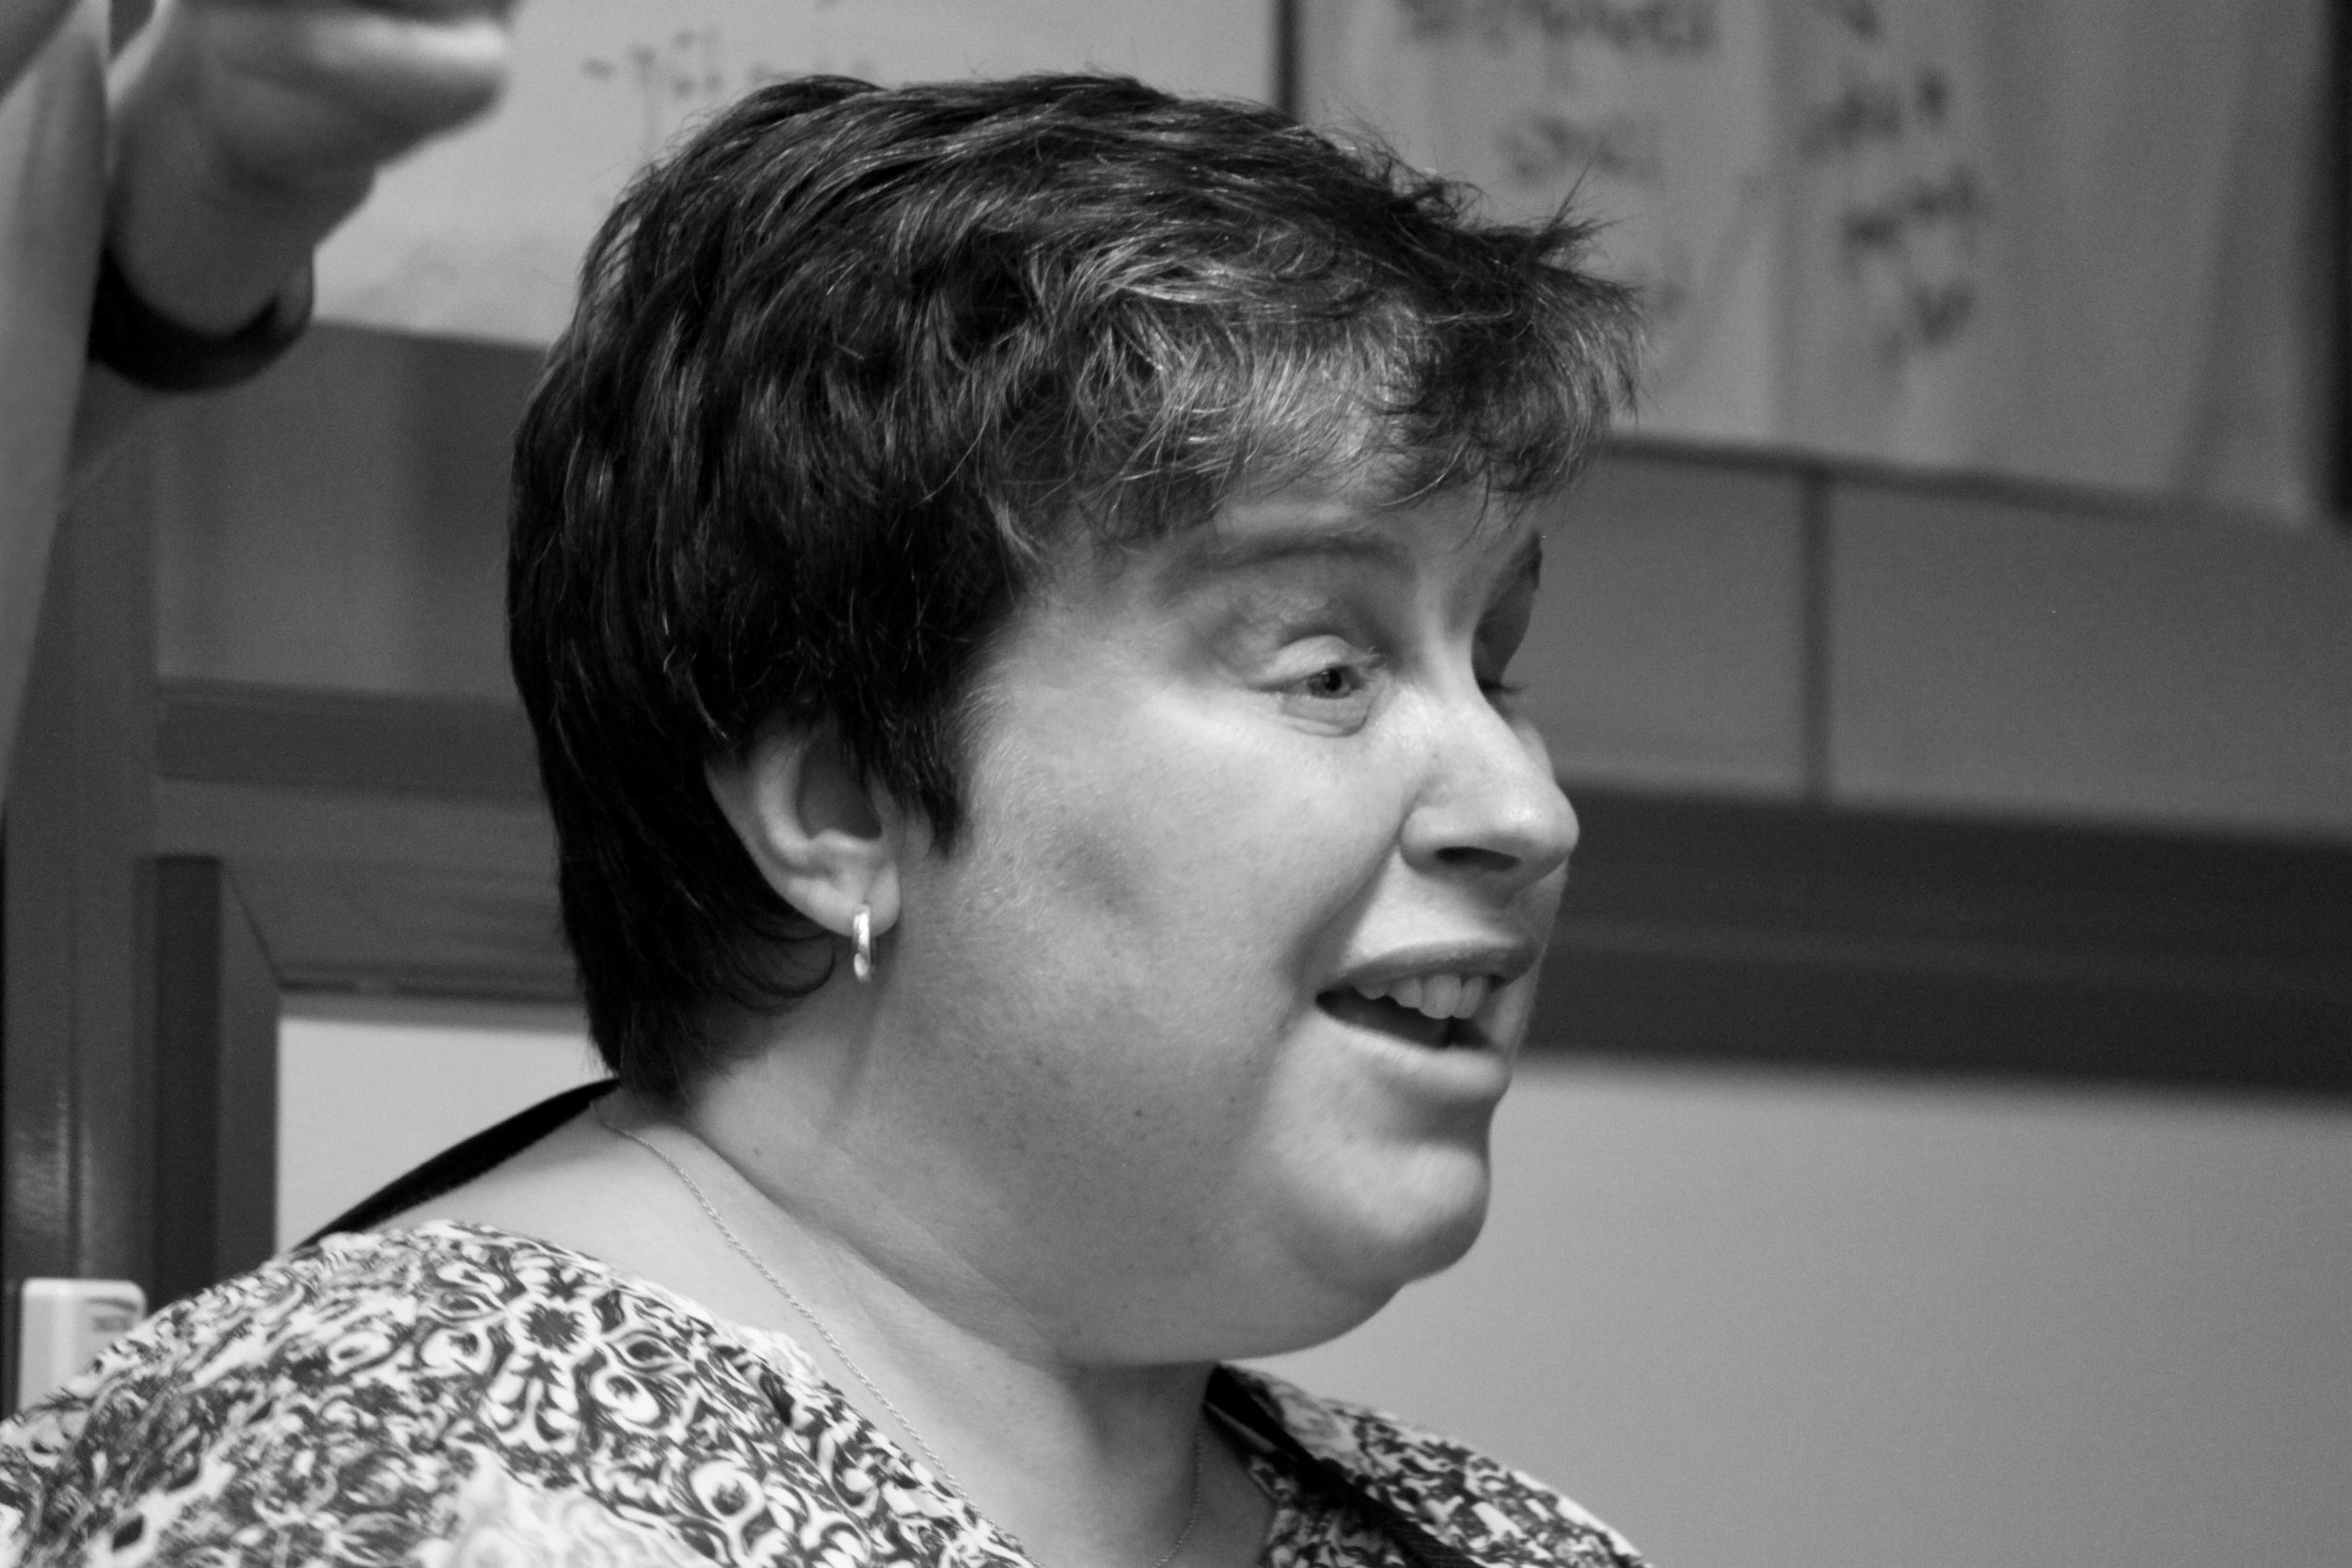 A woman is pictured, she is mid sentence, and shown on a 45 degree angle. It is a close up, she is visible from the shoulders up.